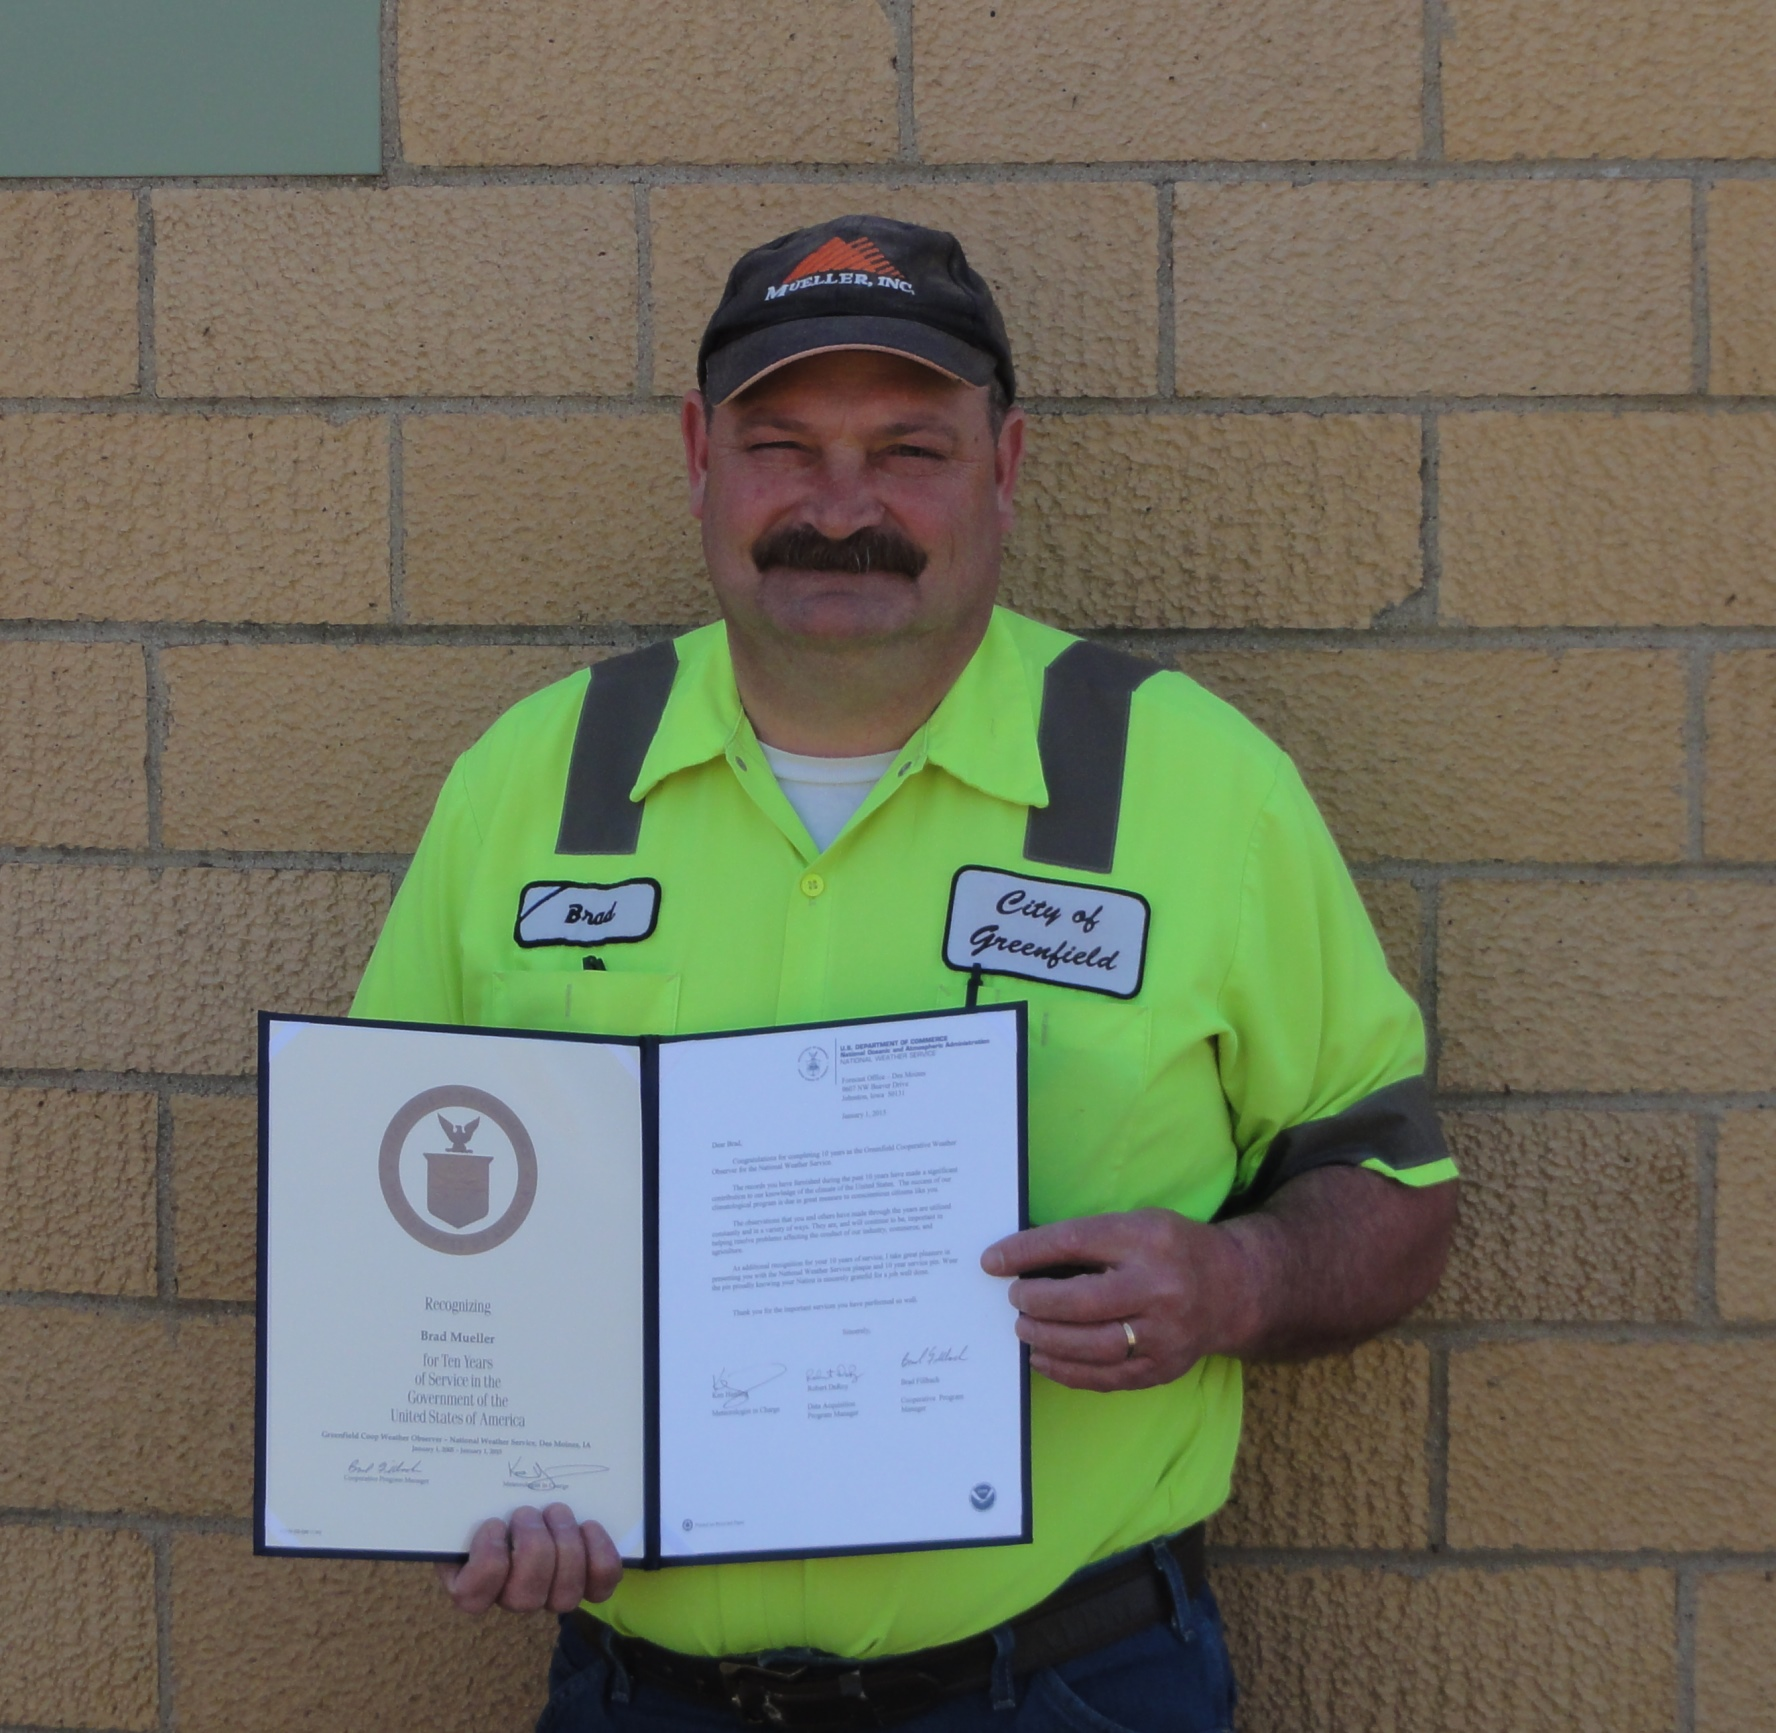 Brad Mueller of Greenfield, IA (pictured) recently received his 10 year Length of Service Award. Presenting the award was Brad Fillbach, HMT, WFO Des Moines, IA